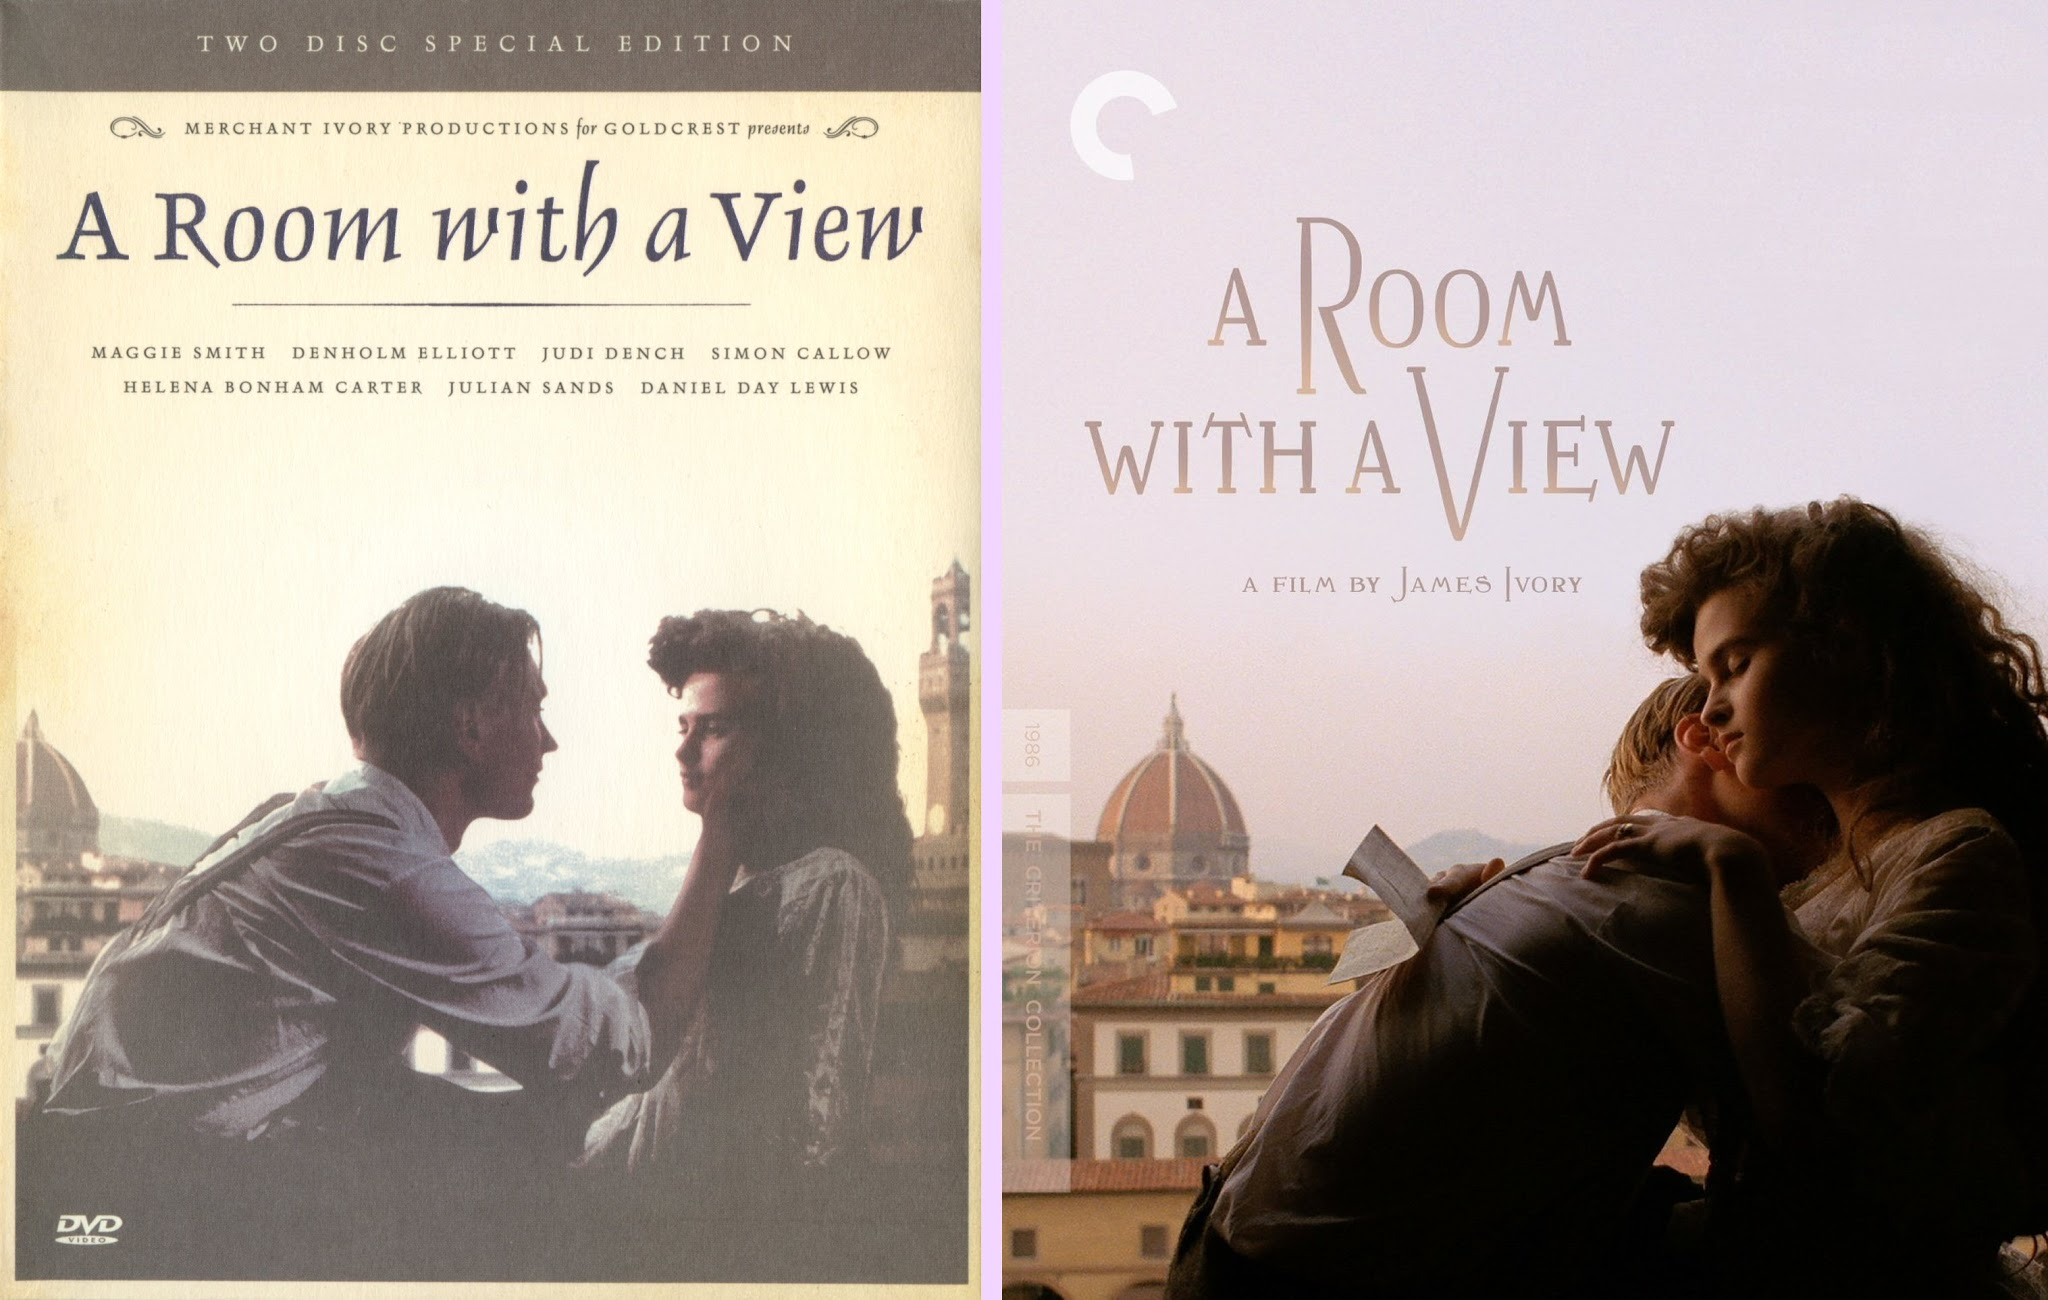 Dvd Exotica Do You Need A New Room With A View Dvd Blu